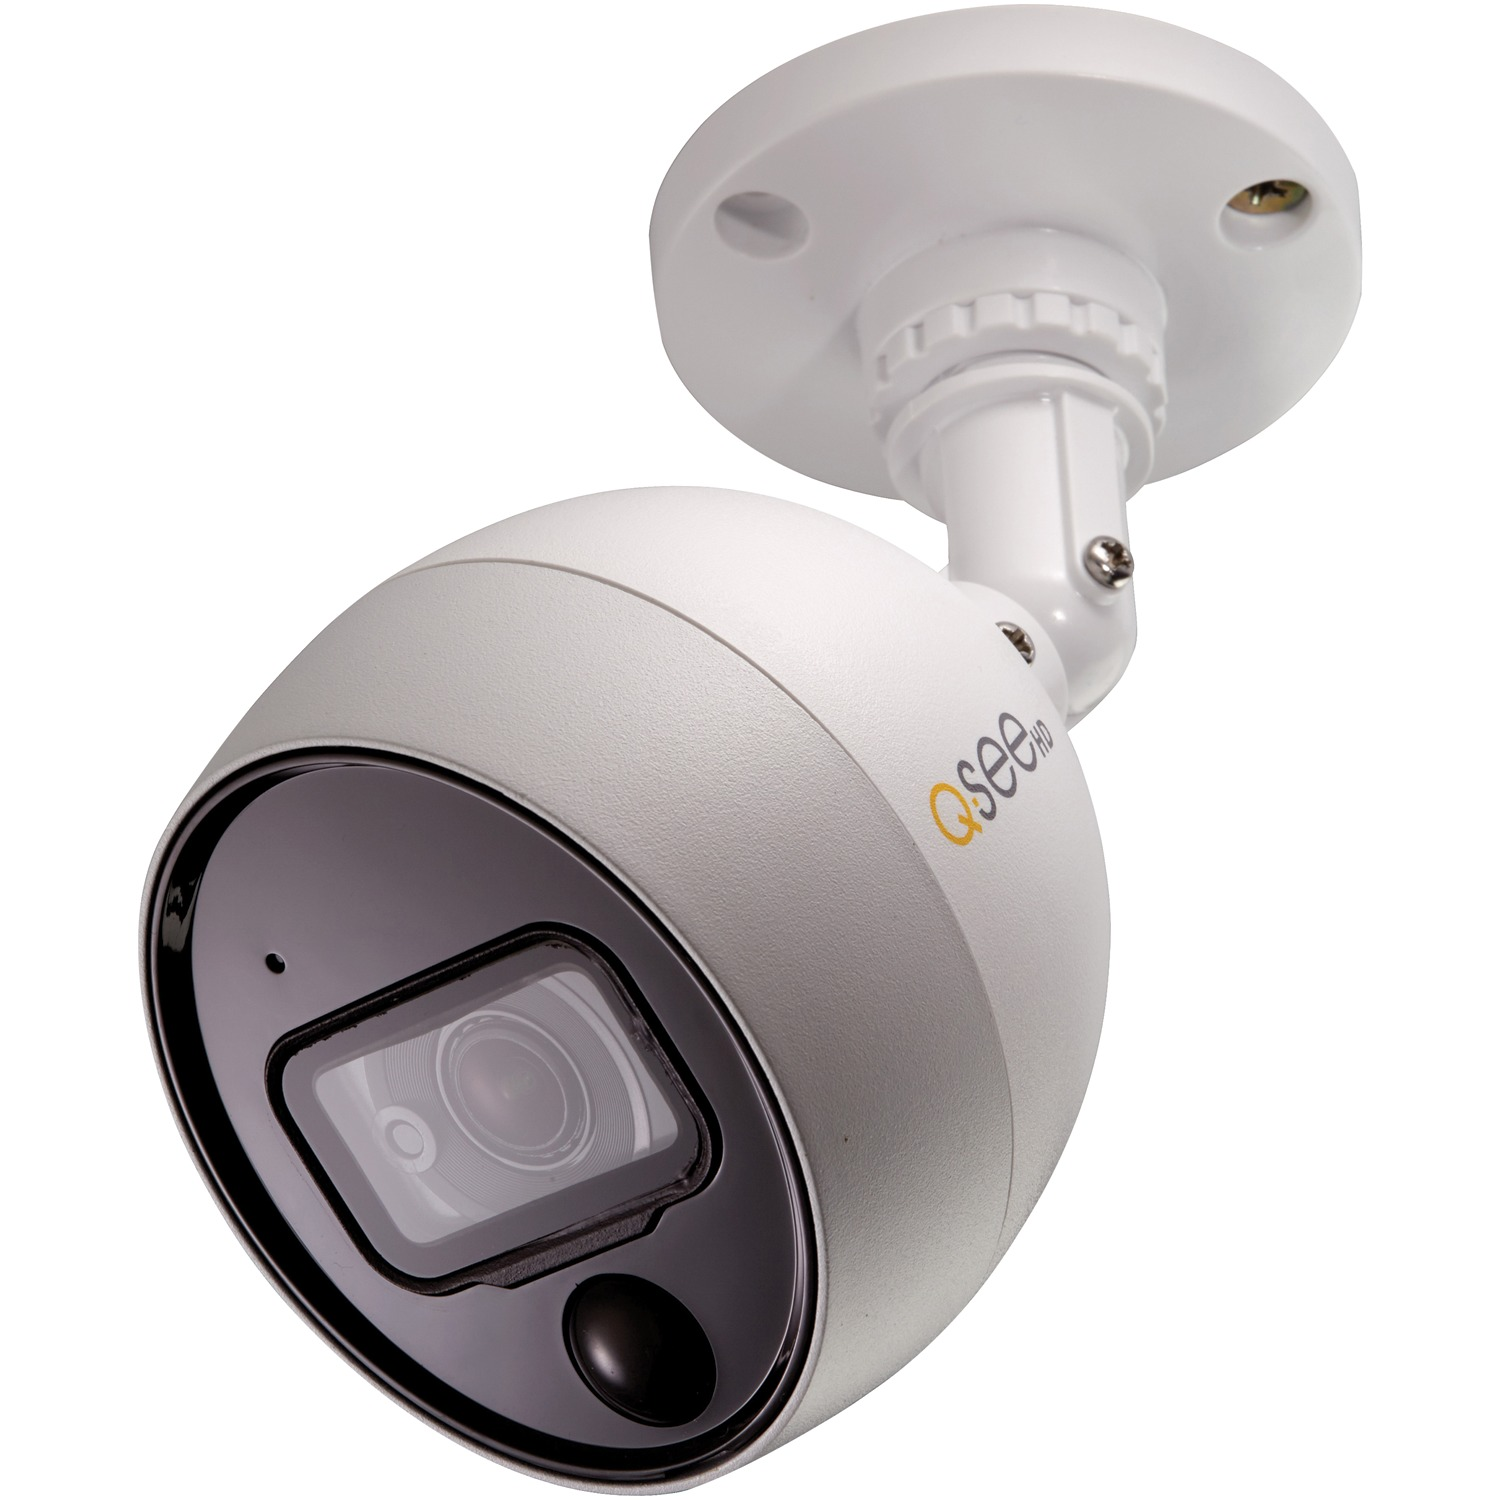 Q-See QCA8095B 4K Ultra HD Add-on Analog Bullet Camera with PIR Technology